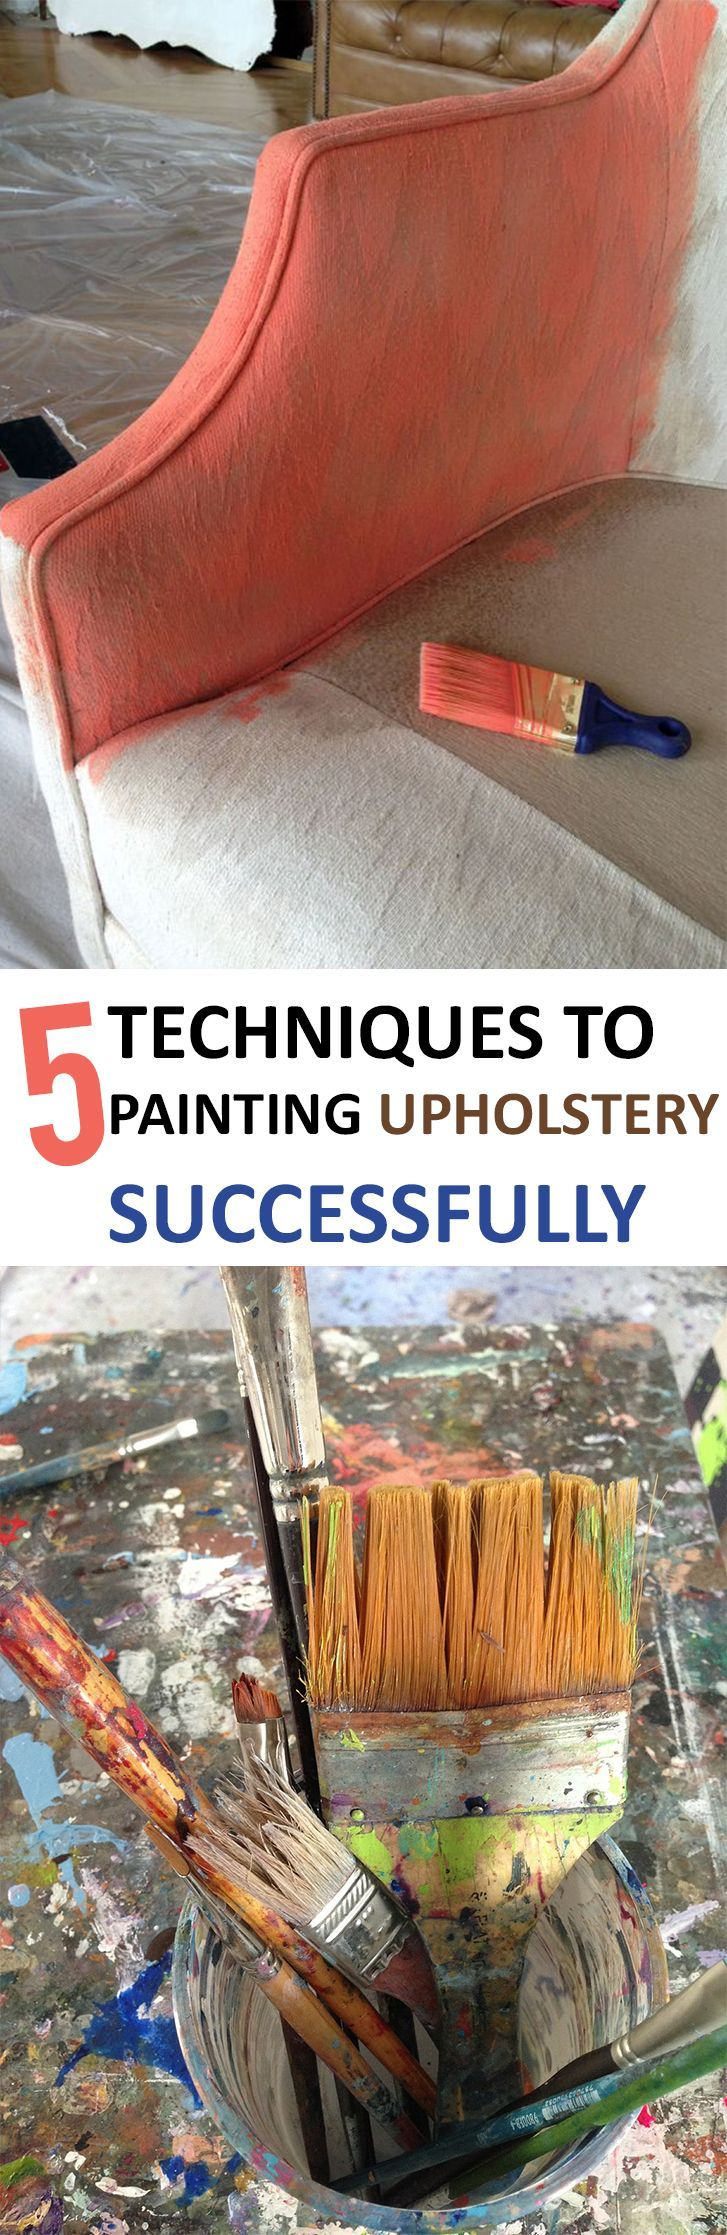 5 Techniques to Painting Upholstery Successfully, #Painting #Successfully #techniques #Upholstery